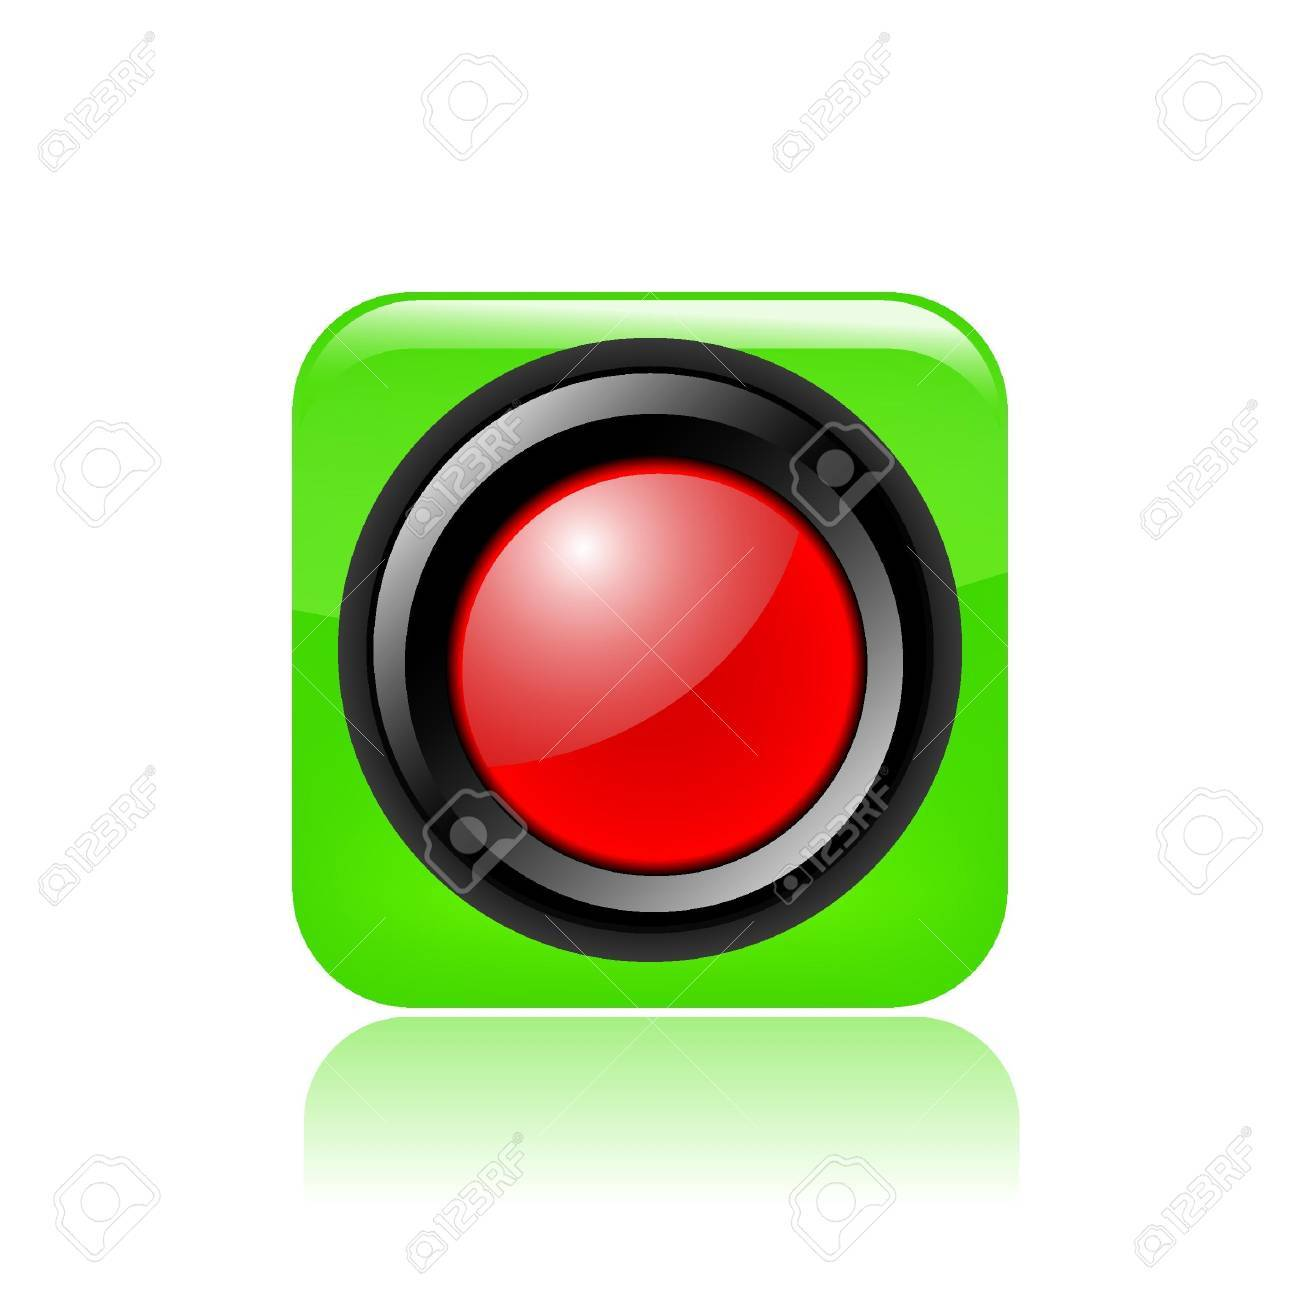 Vector illustration of single isolated red traffic light icon Stock Vector - 12127513